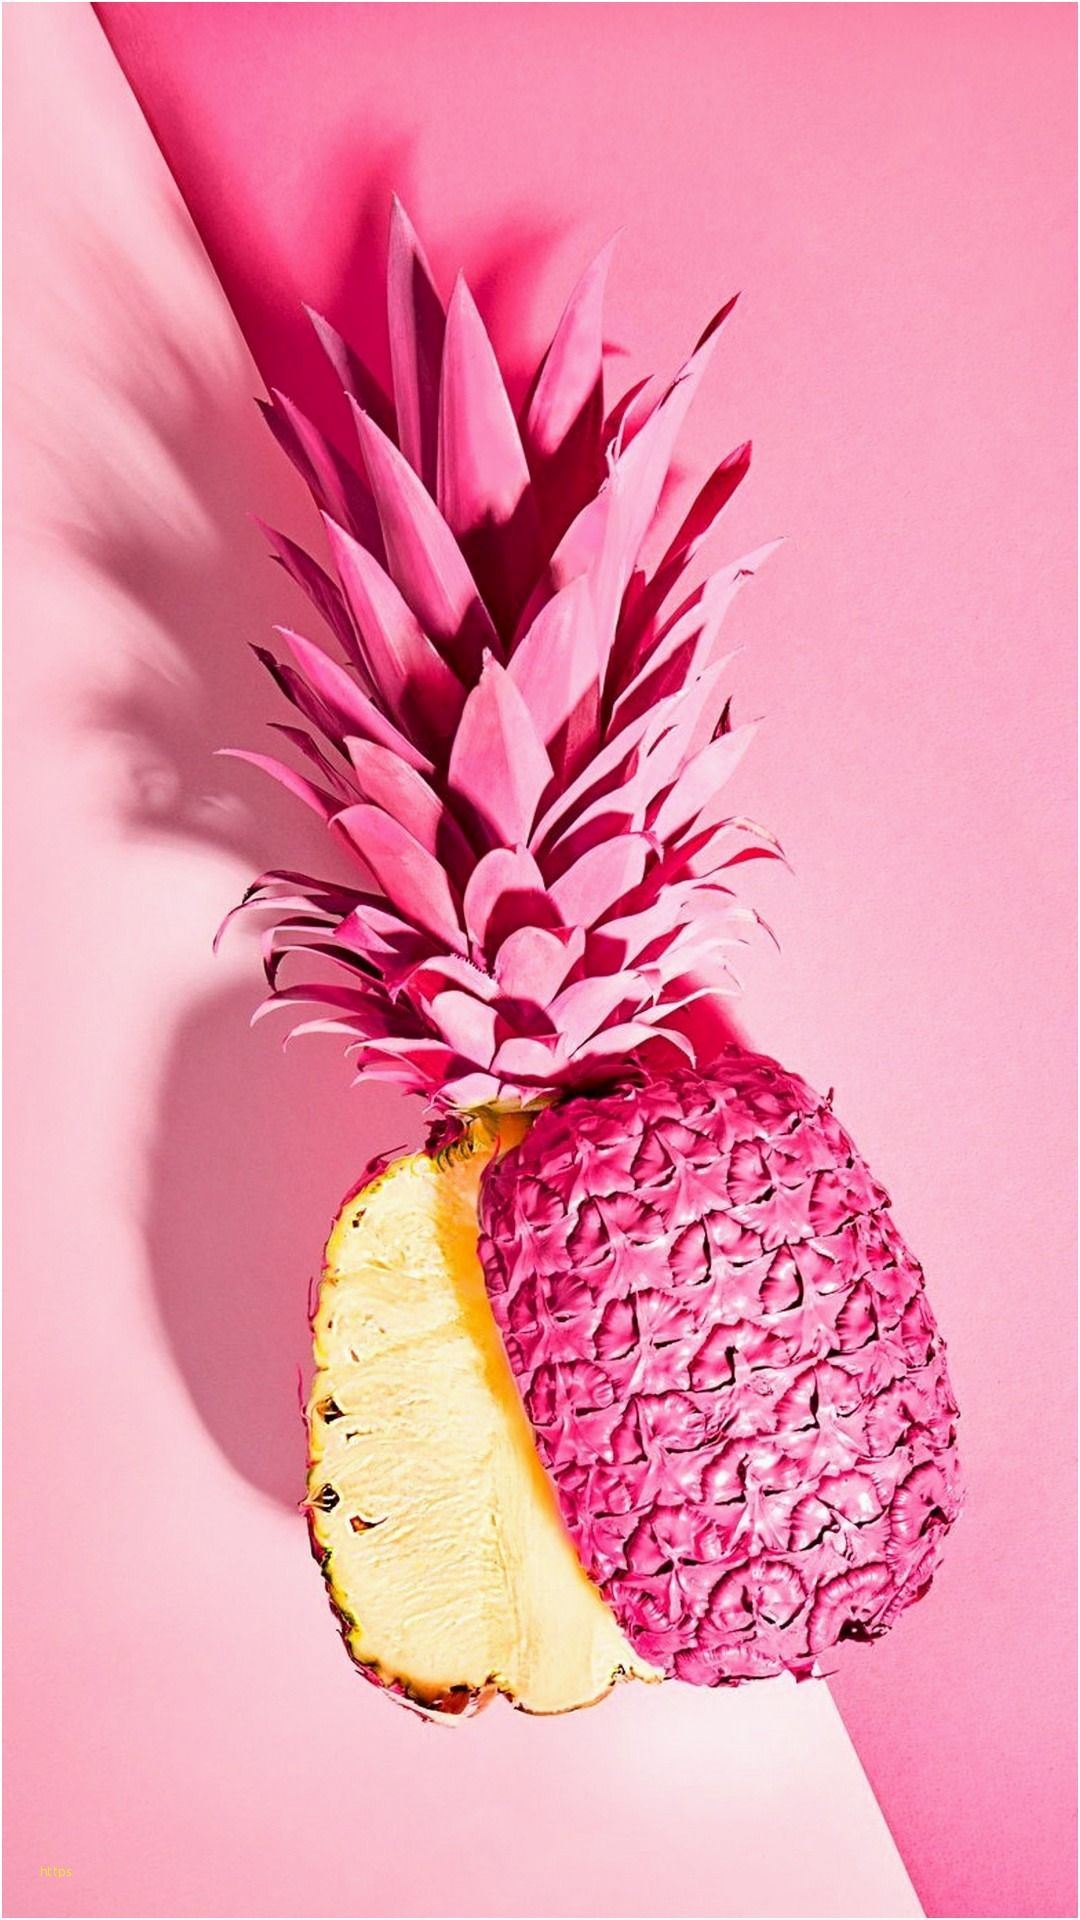 Pineapple Summer Wallpaper Android Download Pineapple Wallpaper Cute Pineapple Wallpaper Pink Wallpaper Iphone